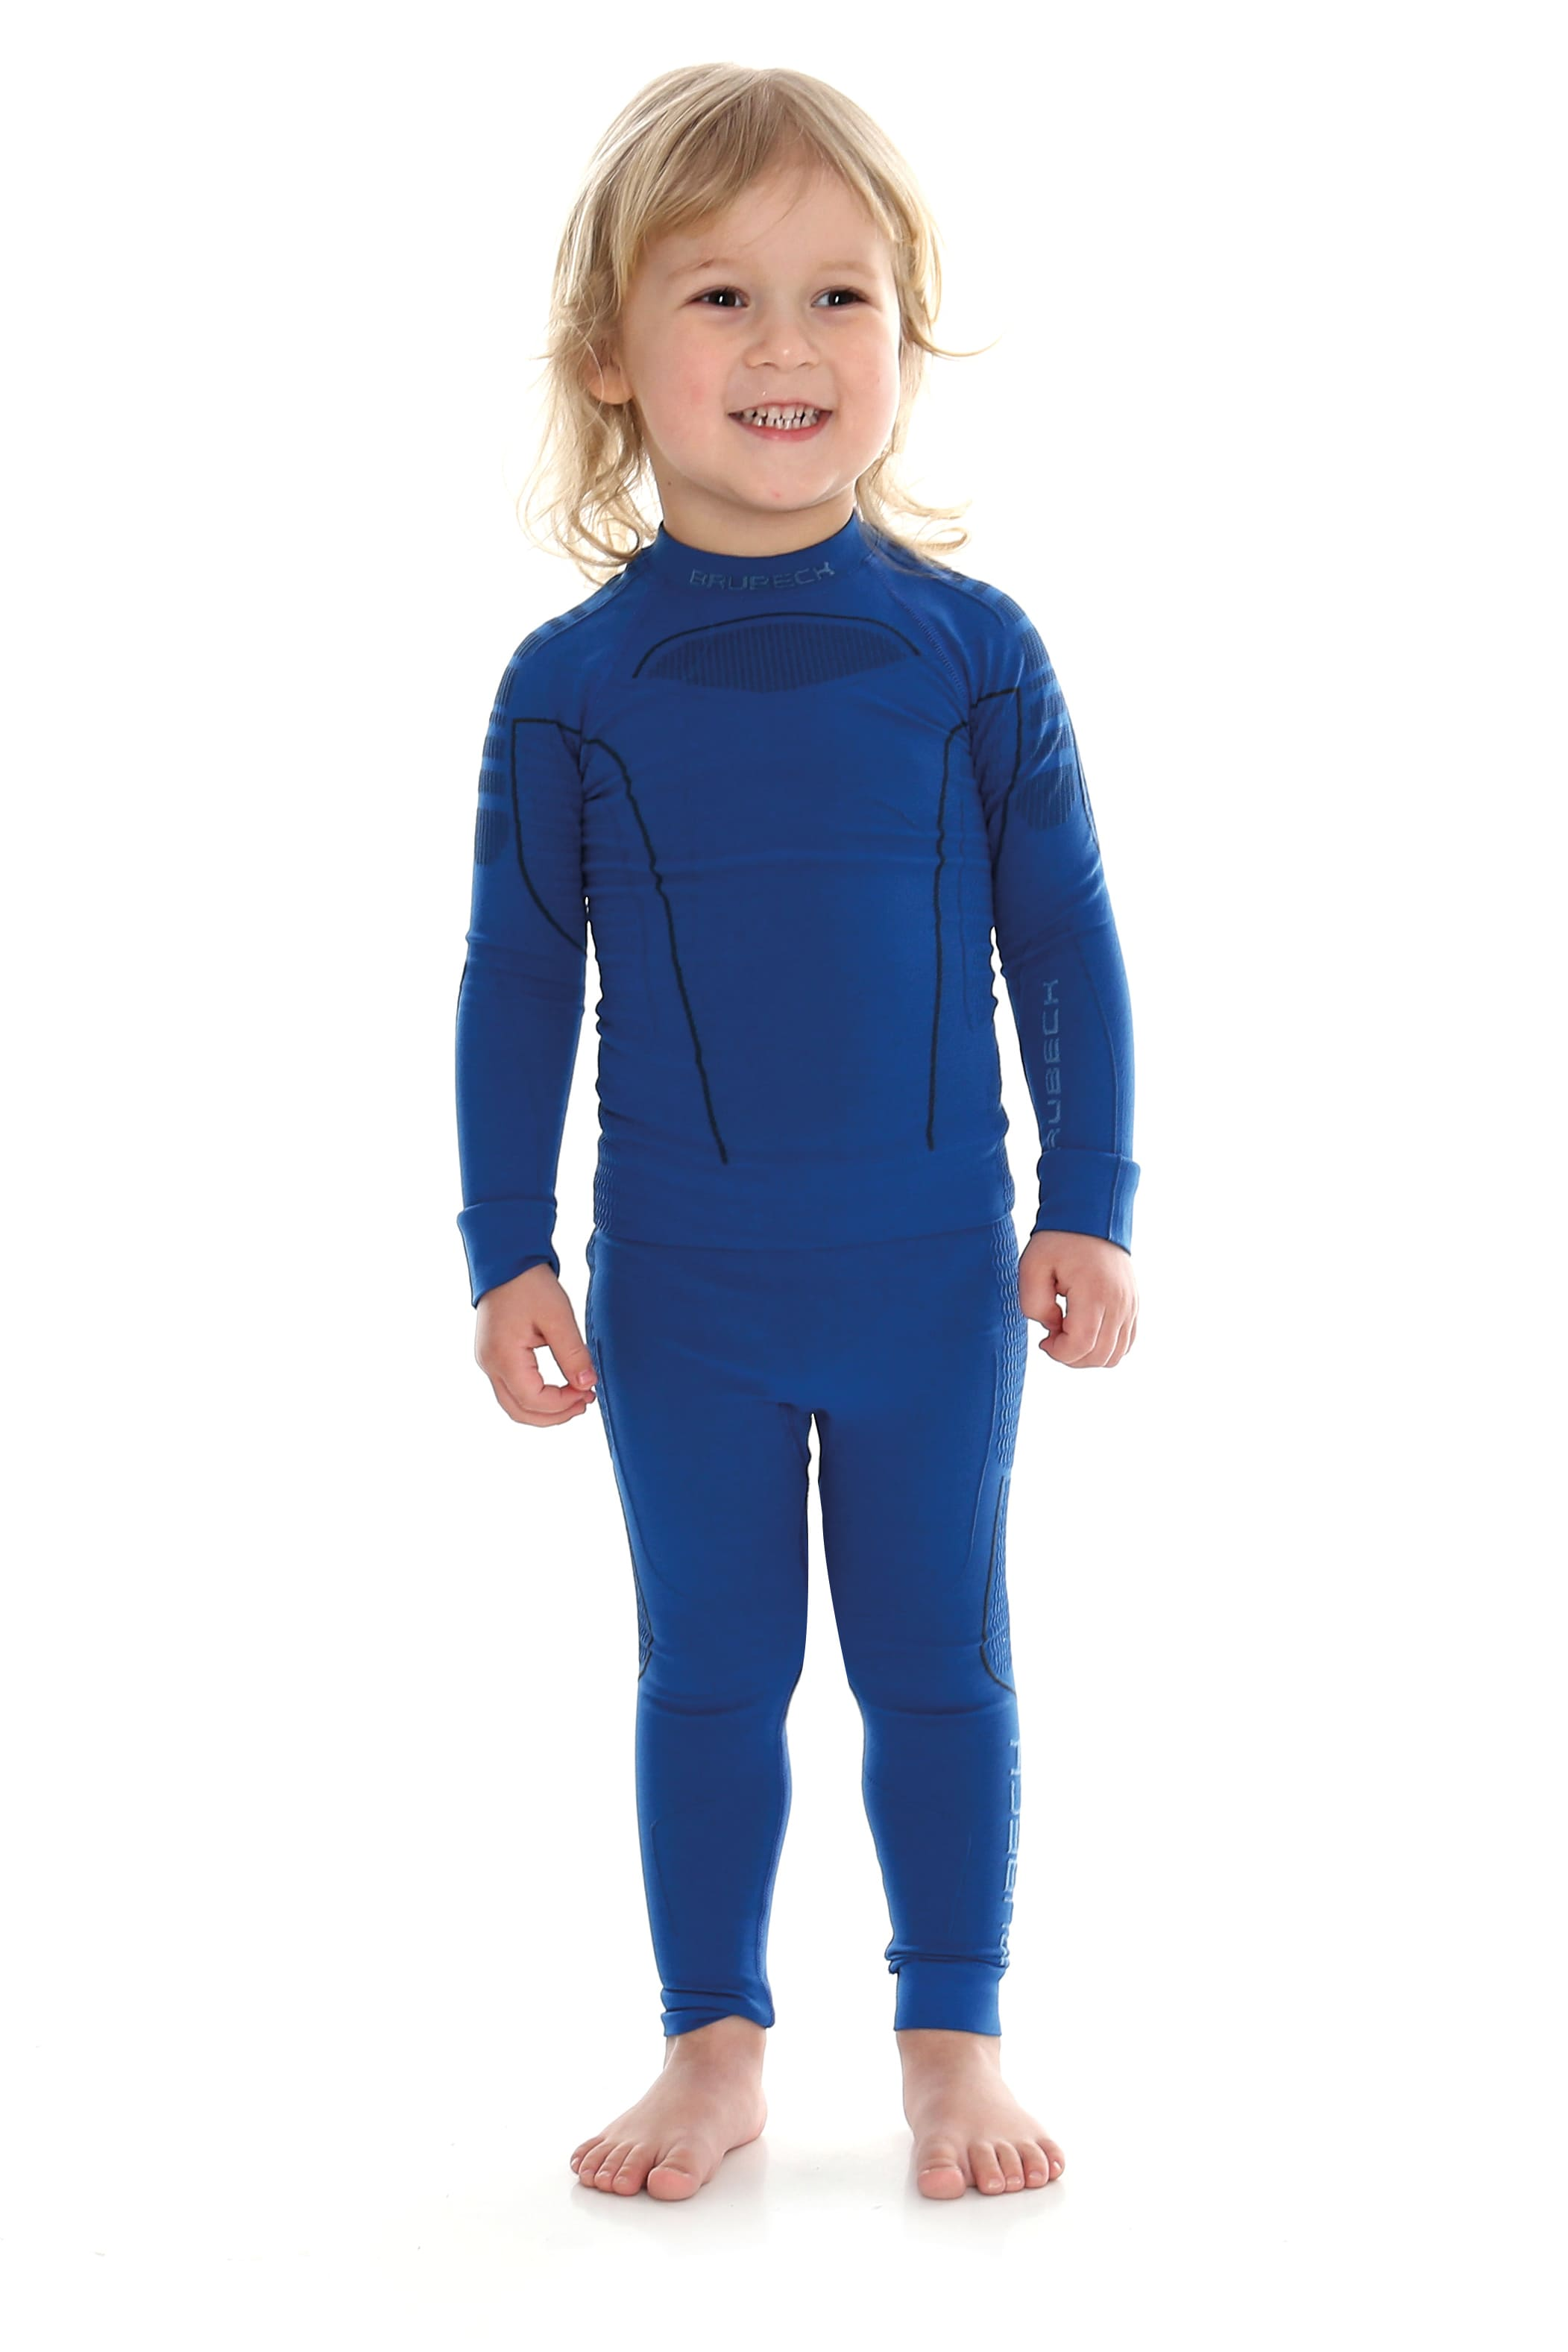 LE12100_LS13660_Knight_Blue__min__1558356874_746